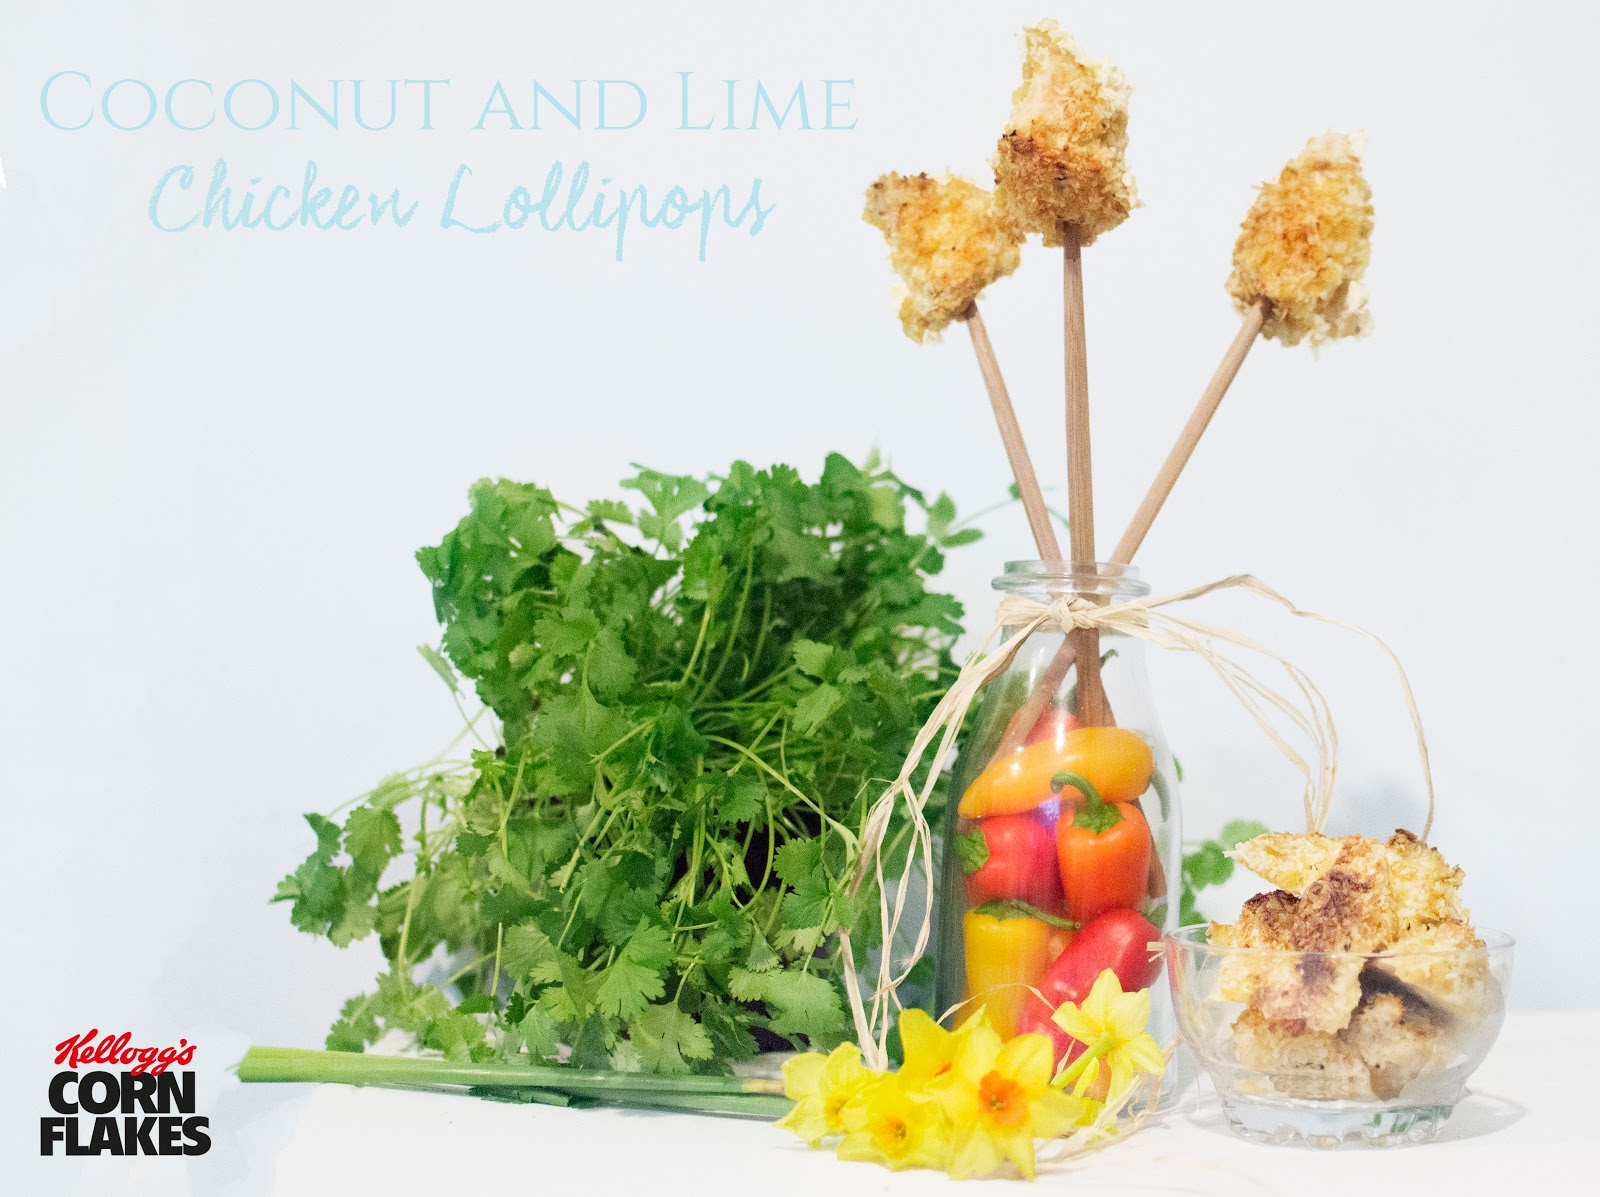 KELLOGG'S COCONUT & LIME CHICKEN CORN FLAKE LOLLIPOPS AND SNAP, CRACKLE CHILI PRAWNCAKES